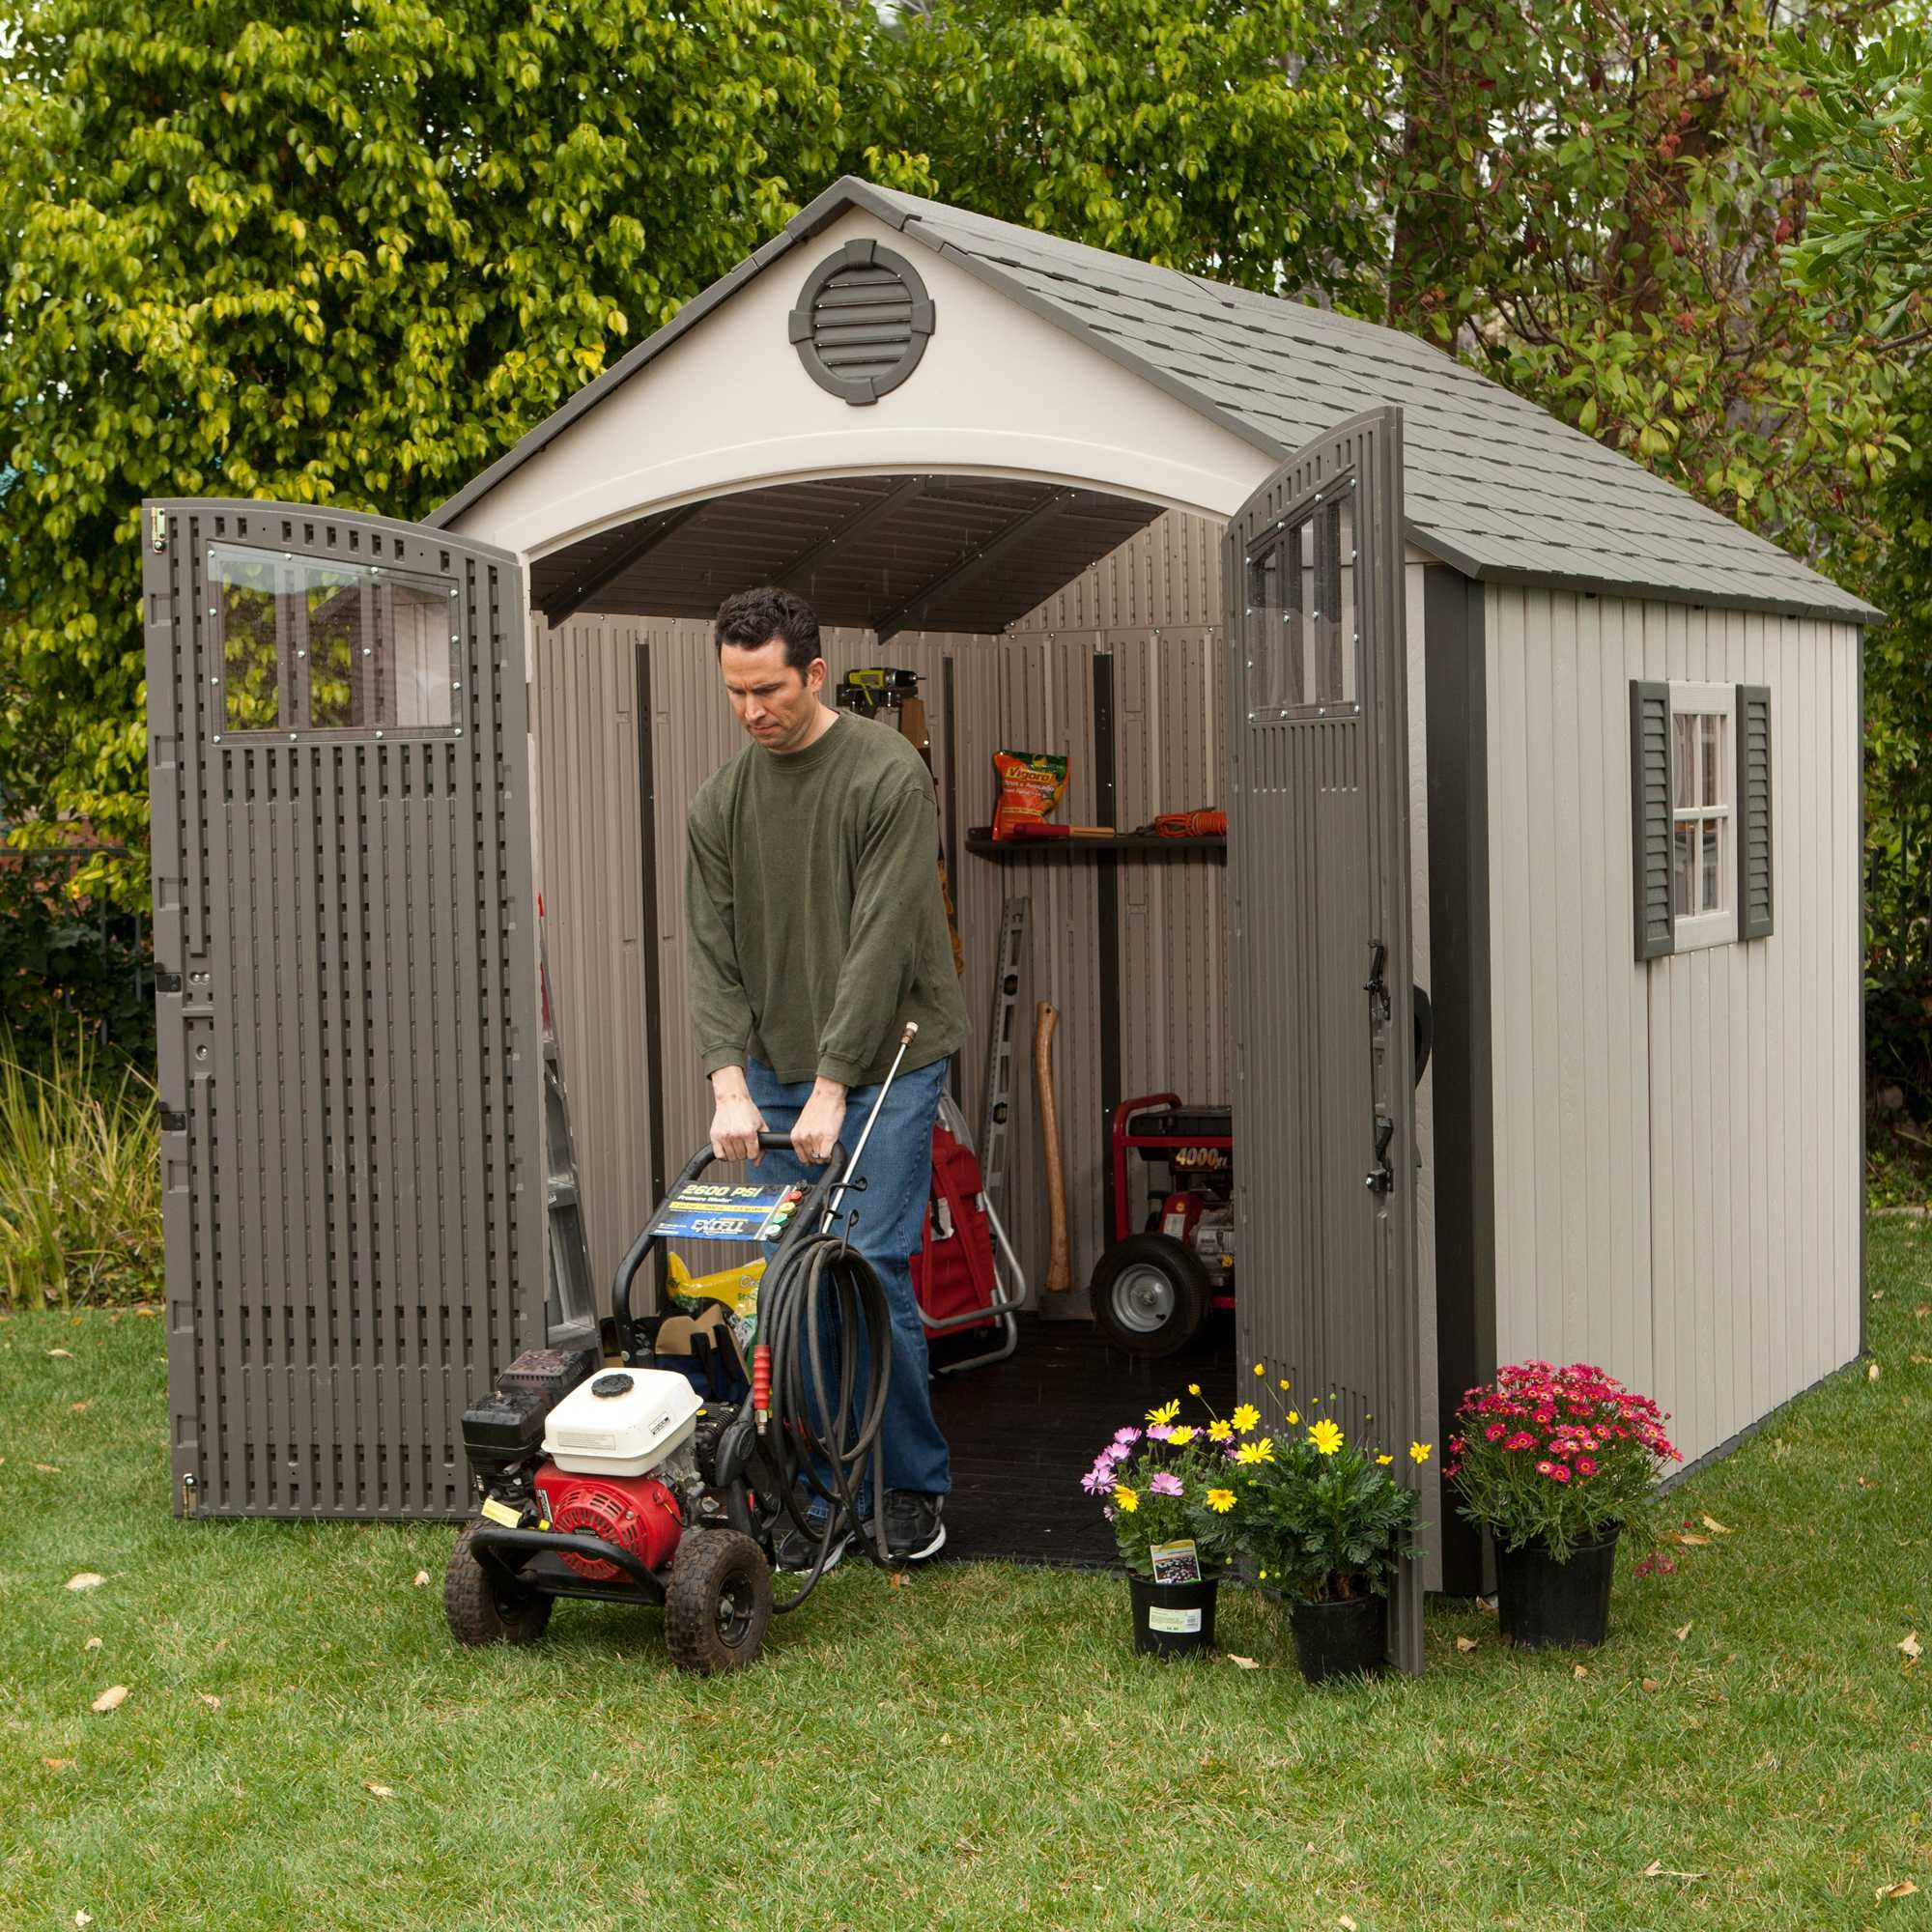 60077 71 3 Square Ft 507 65 Cubic Ft The Lifetime 8 X 10 Storage Shed Features 1 Shatter Proof Polycar Shed Lifetime Storage Sheds Building A Shed